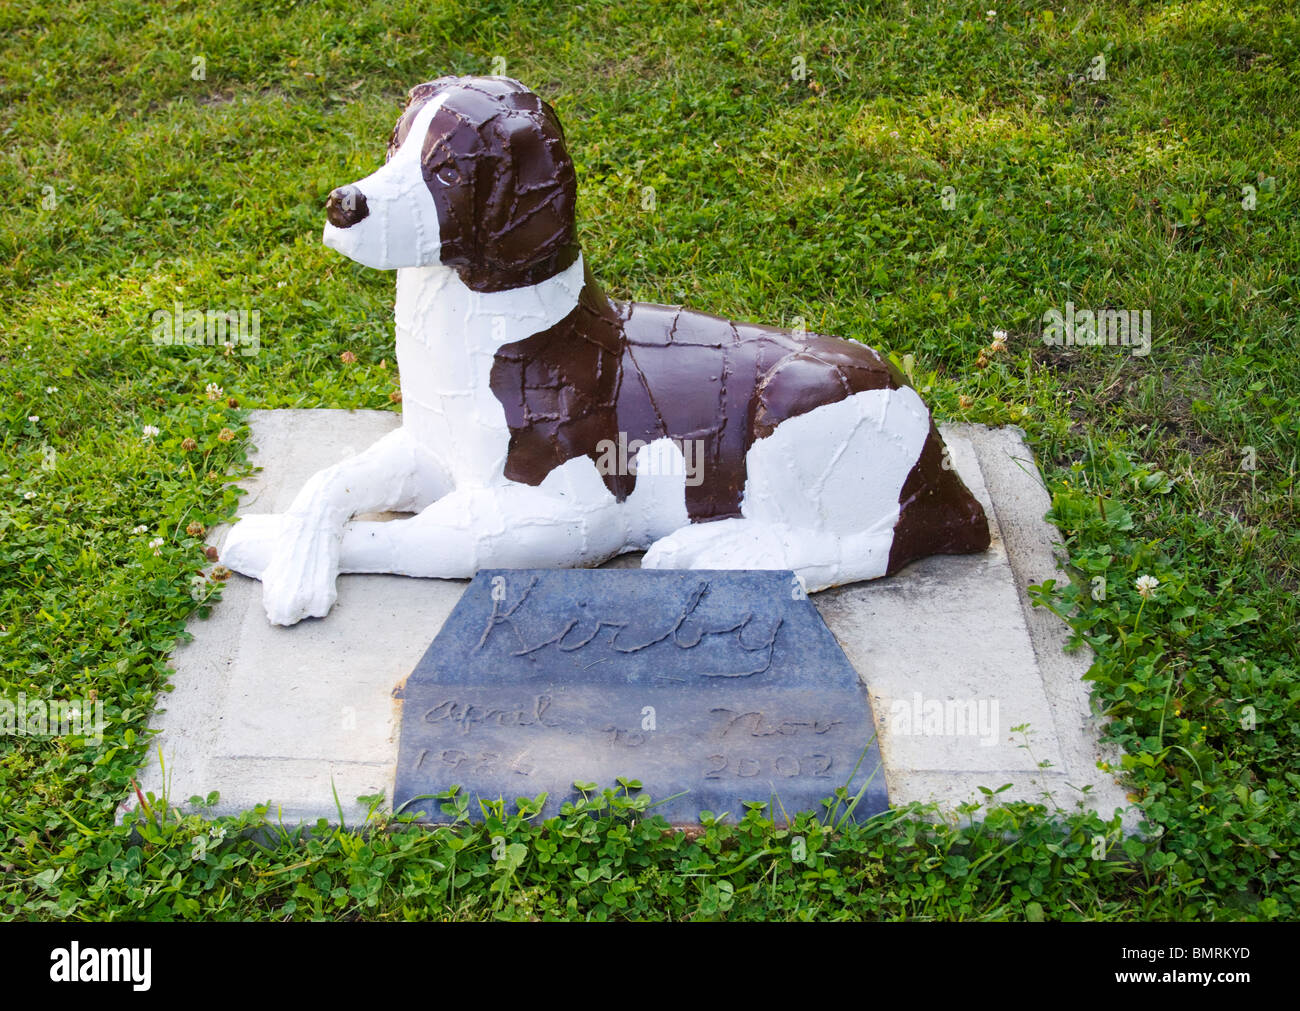 Ken Nybergs Dog Sculpture in Vining Minnesota - Stock Image